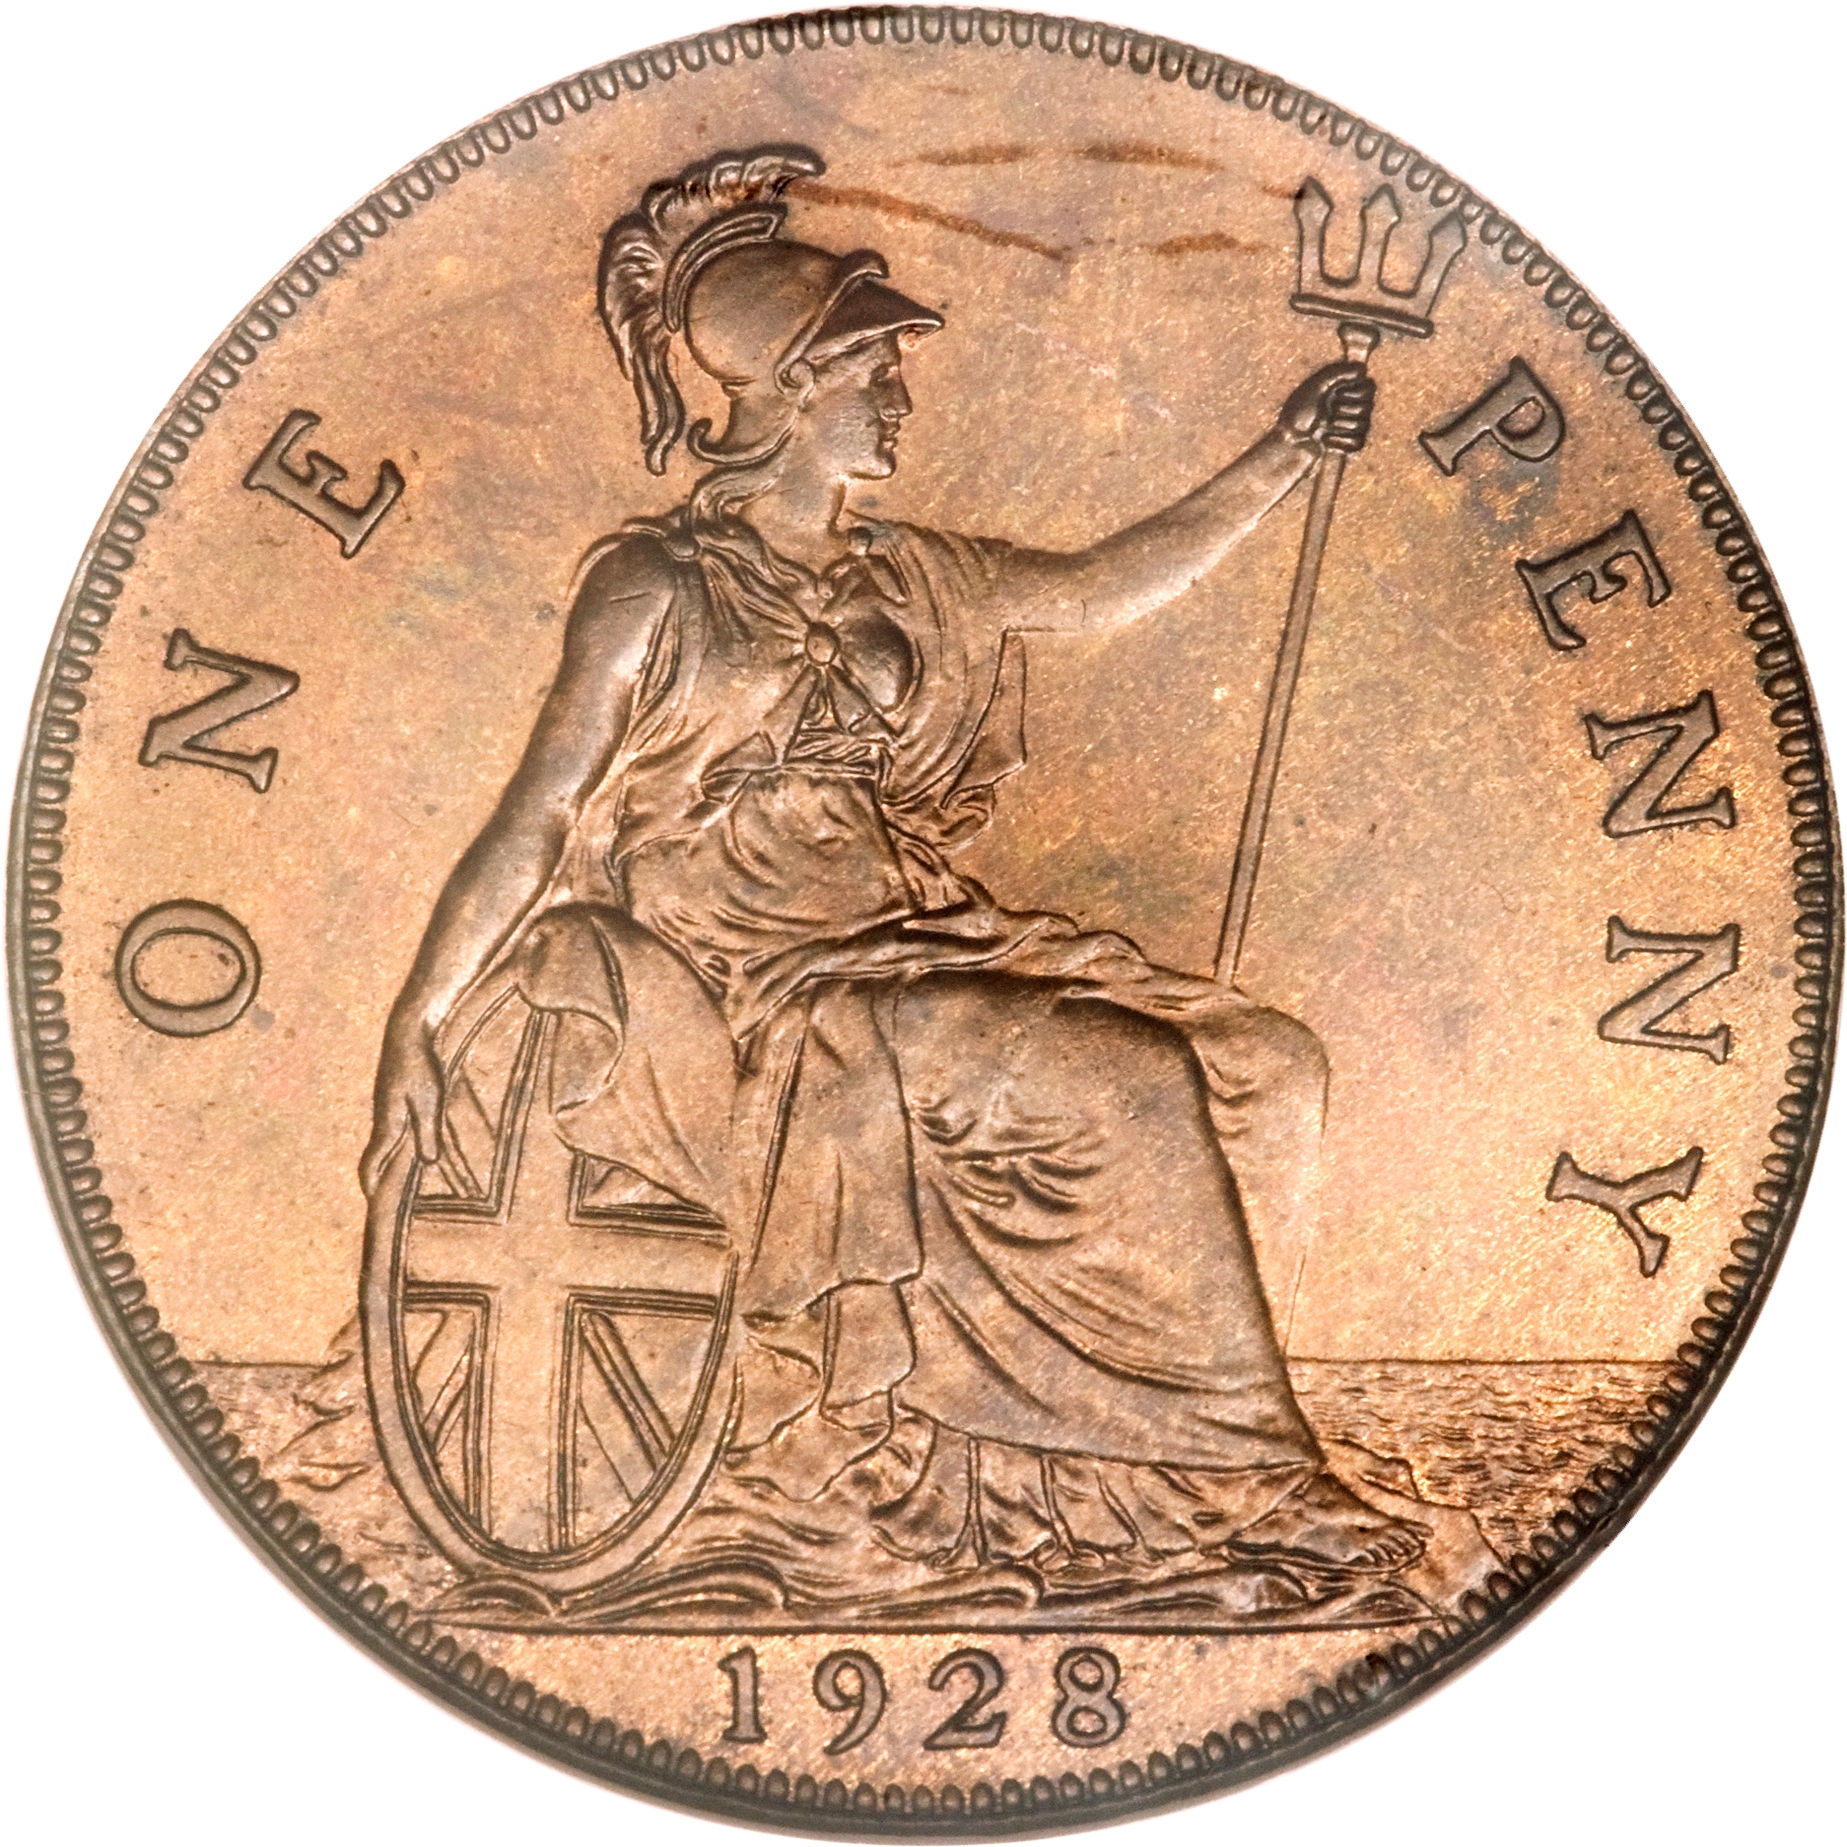 1 Penny - George V (smaller portrait) - United Kingdom – Numista